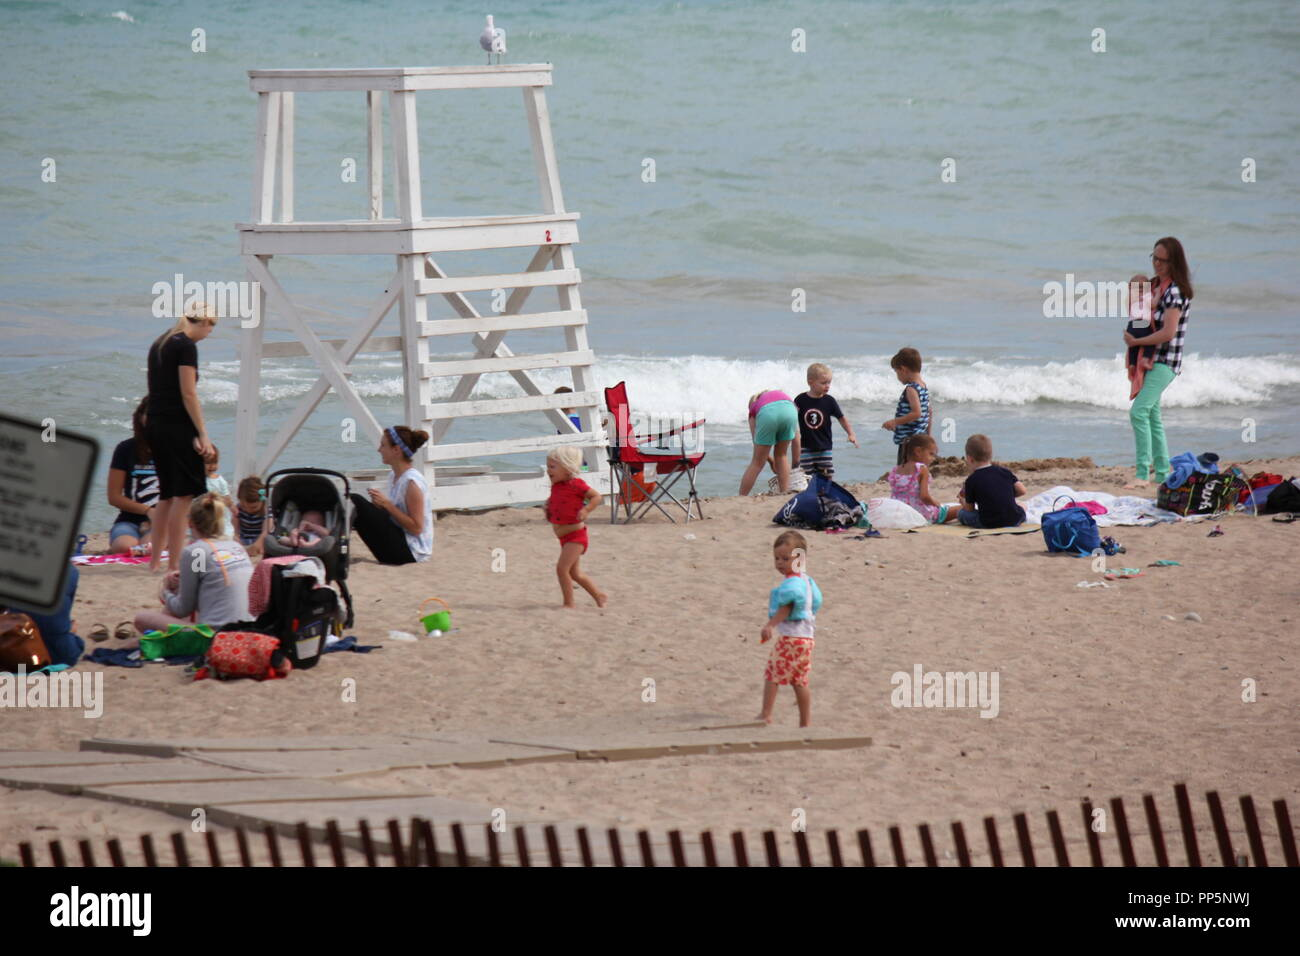 Modern summer lifestyle imagery of women enjoying the beach with their young children, beach scene. - Stock Image